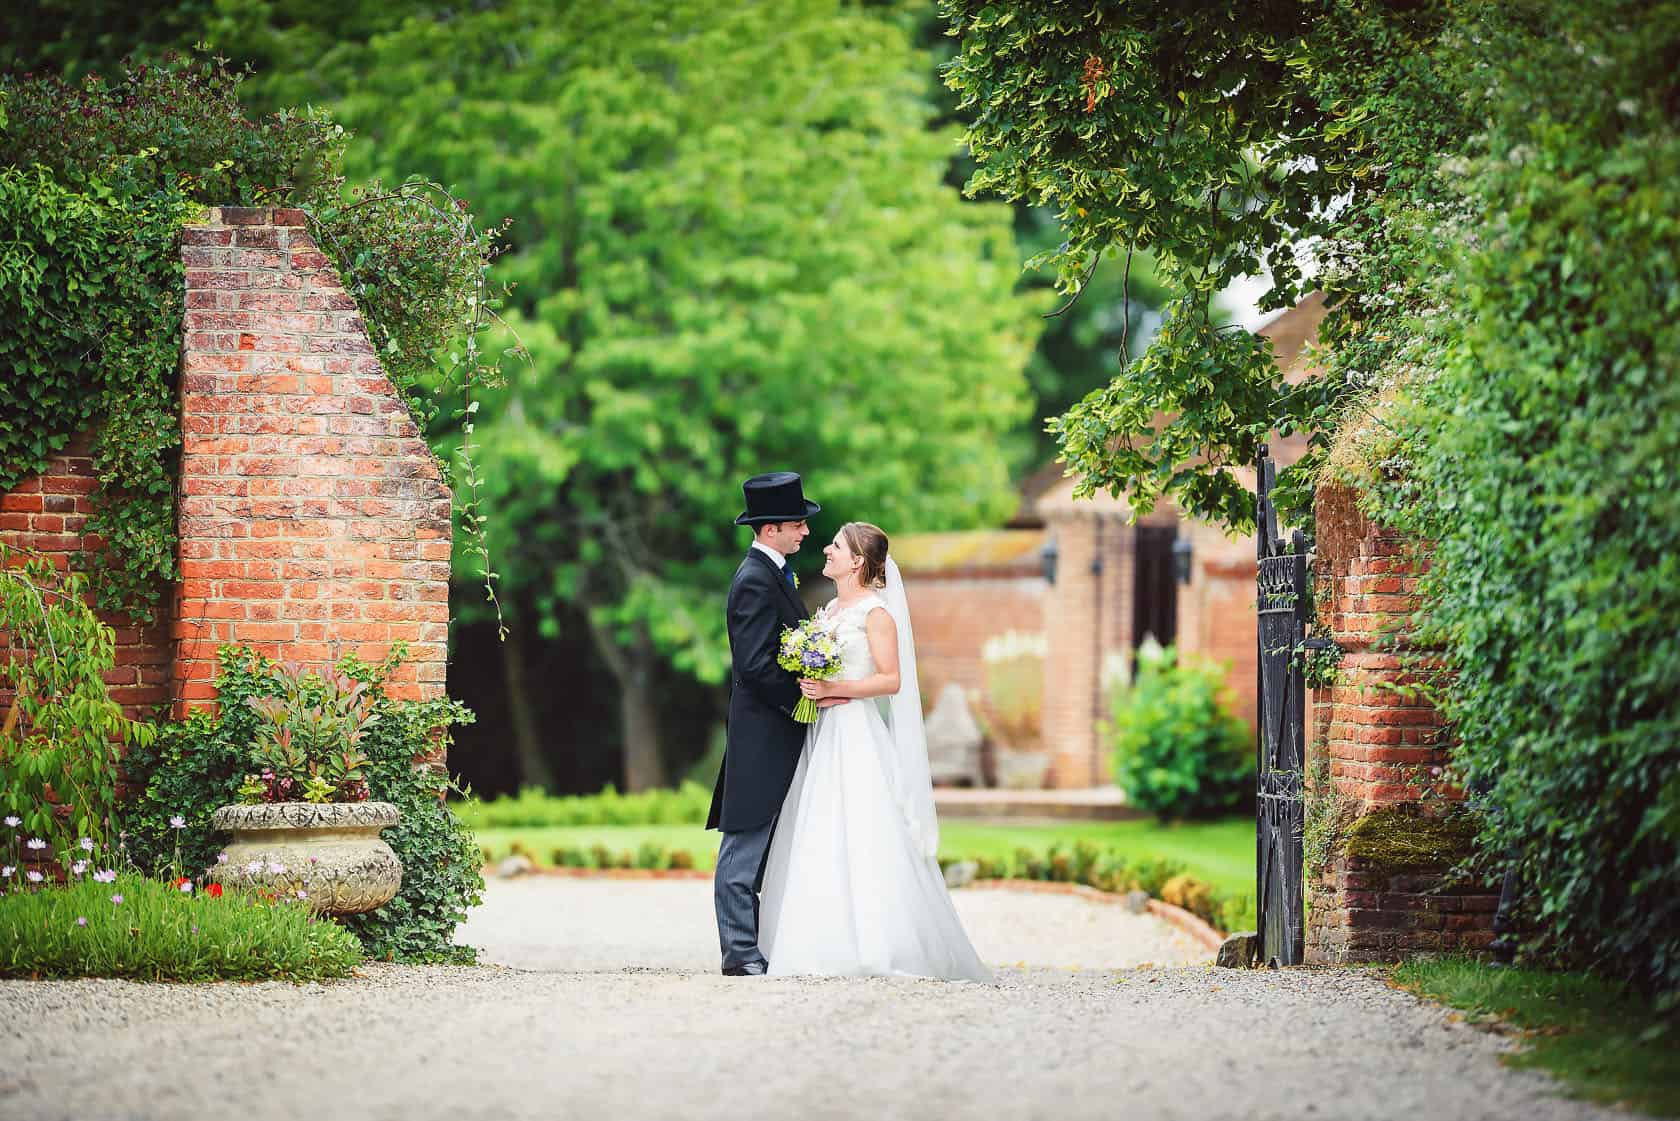 Wedding Photography Leez Priory, Wedding Photographer Leez Priory : Hannah+Edward